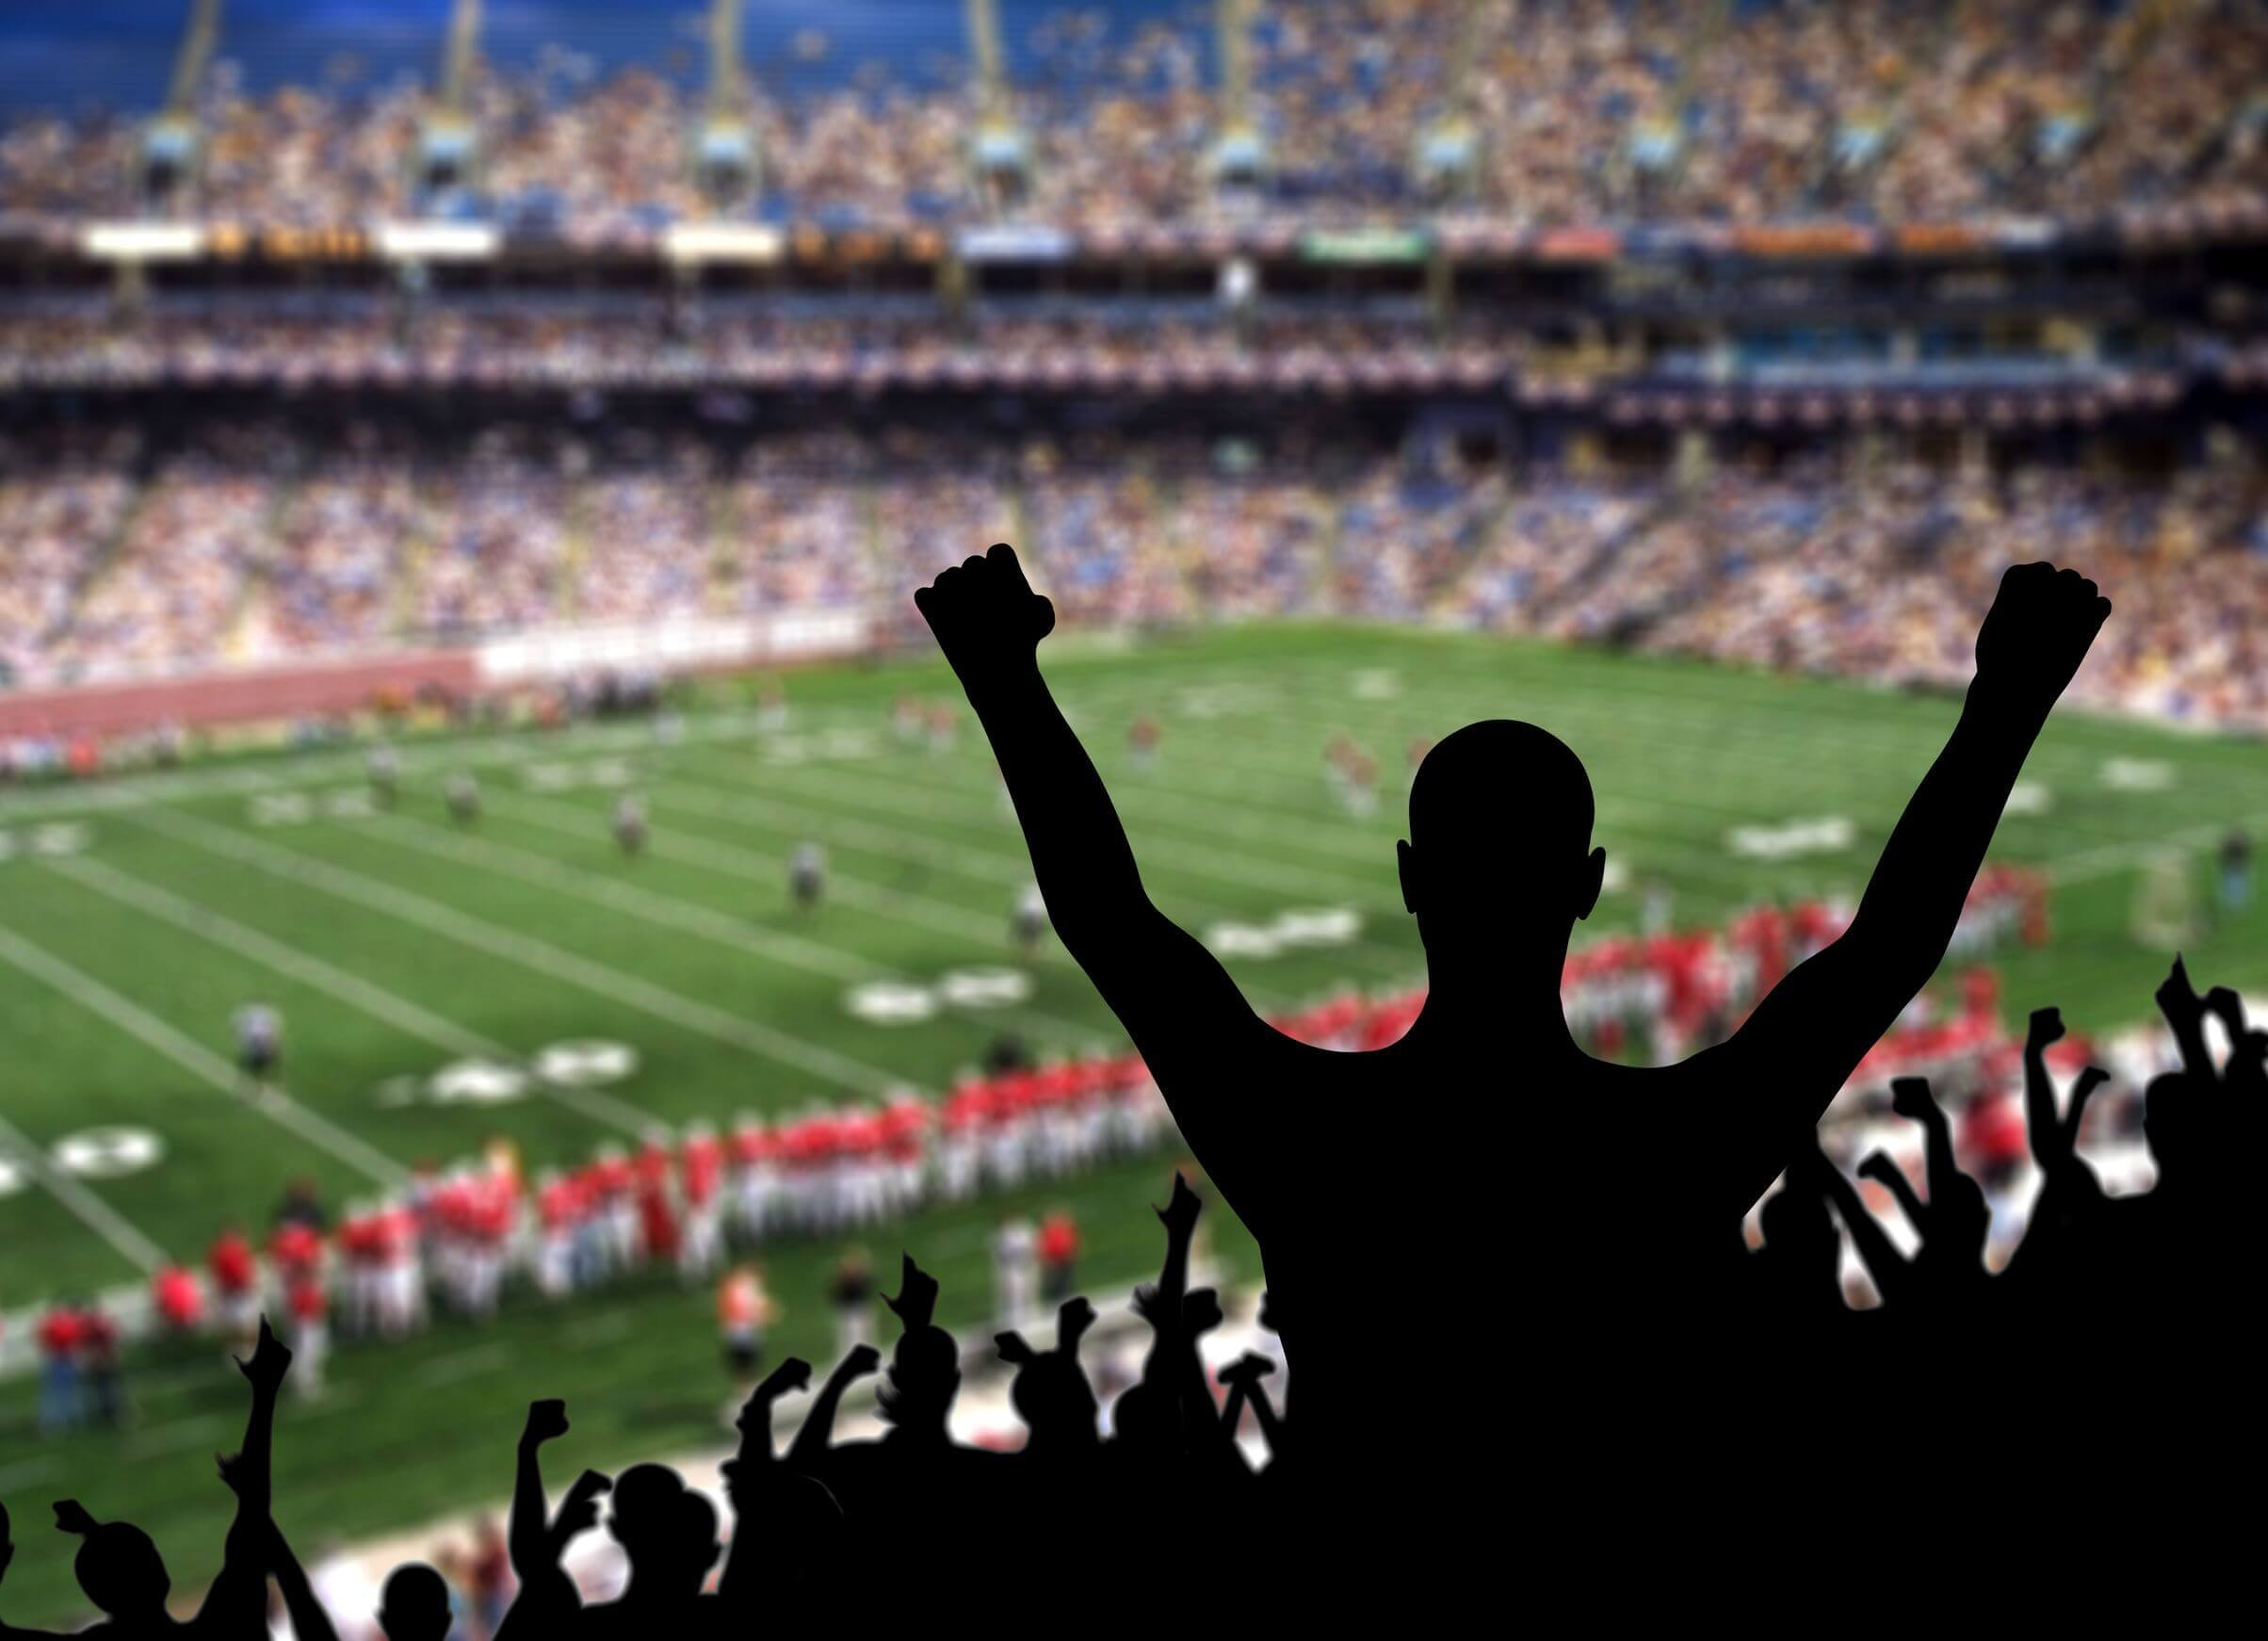 Get Fame And Glory With New Sports Betting App PlaynBrag